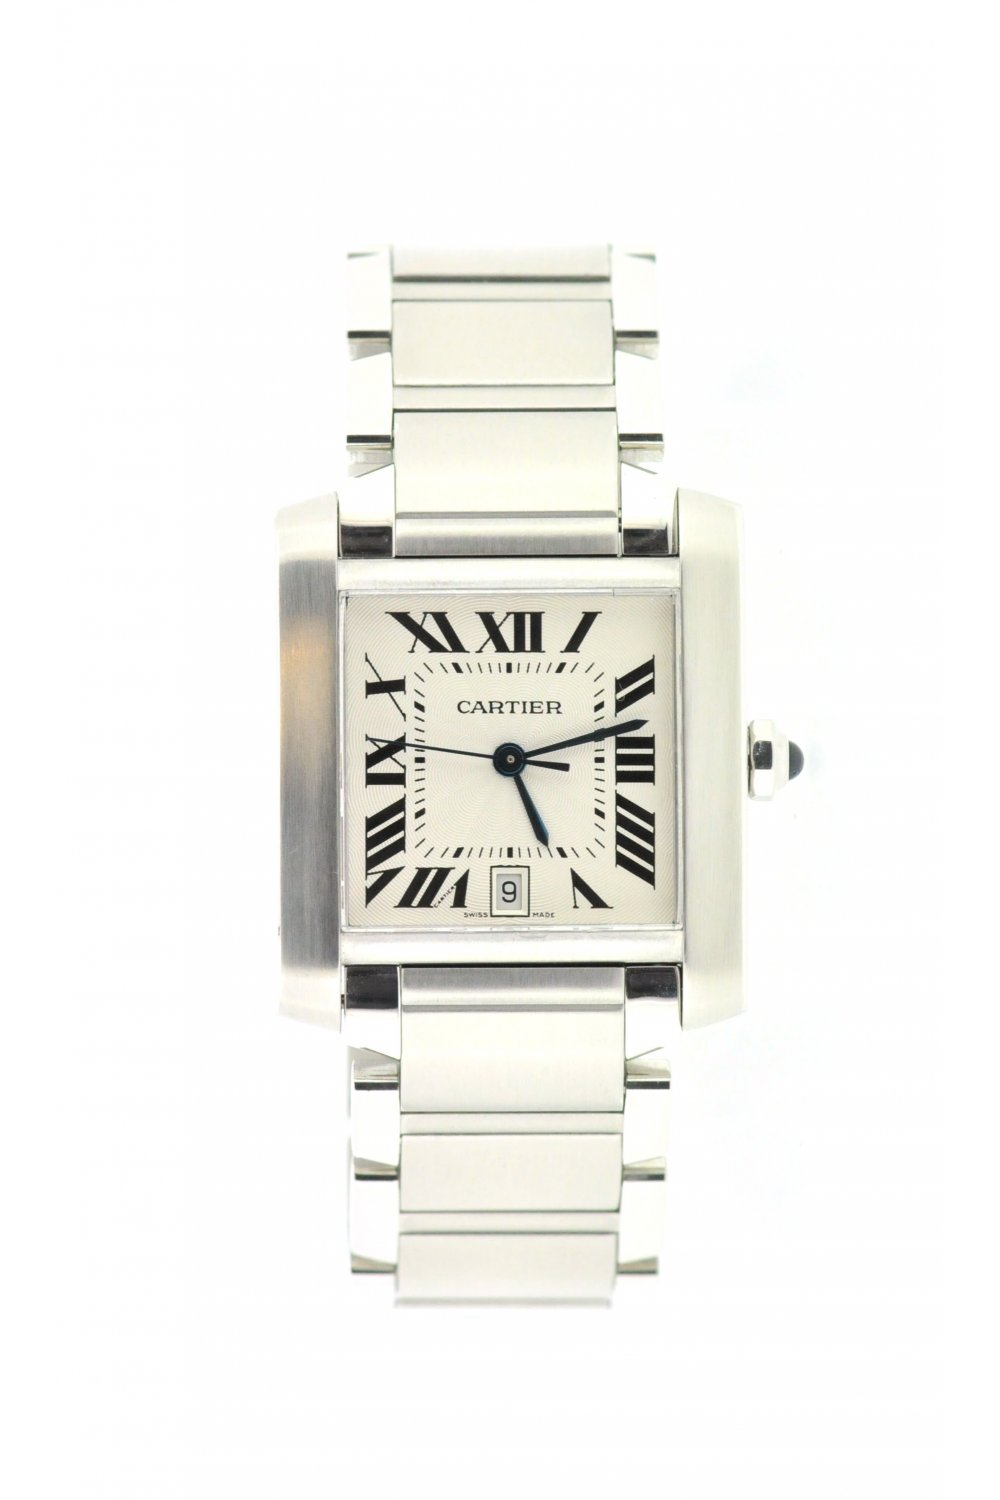 miltons scond hand cartier watches cartier tank. Black Bedroom Furniture Sets. Home Design Ideas